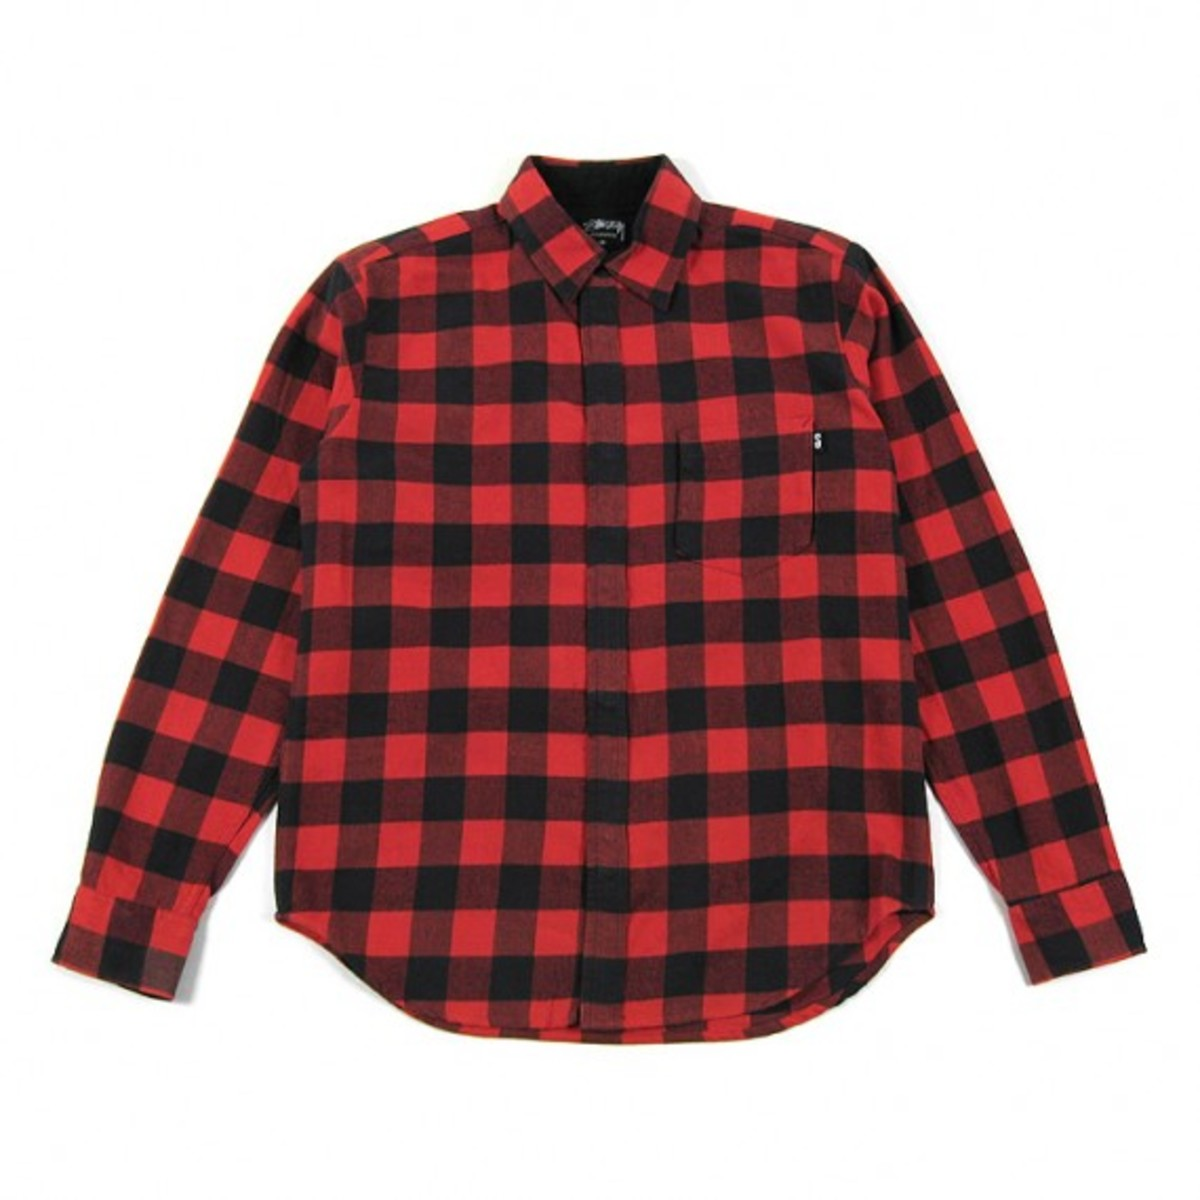 stussy-fall-2009-flannel-shirts-5